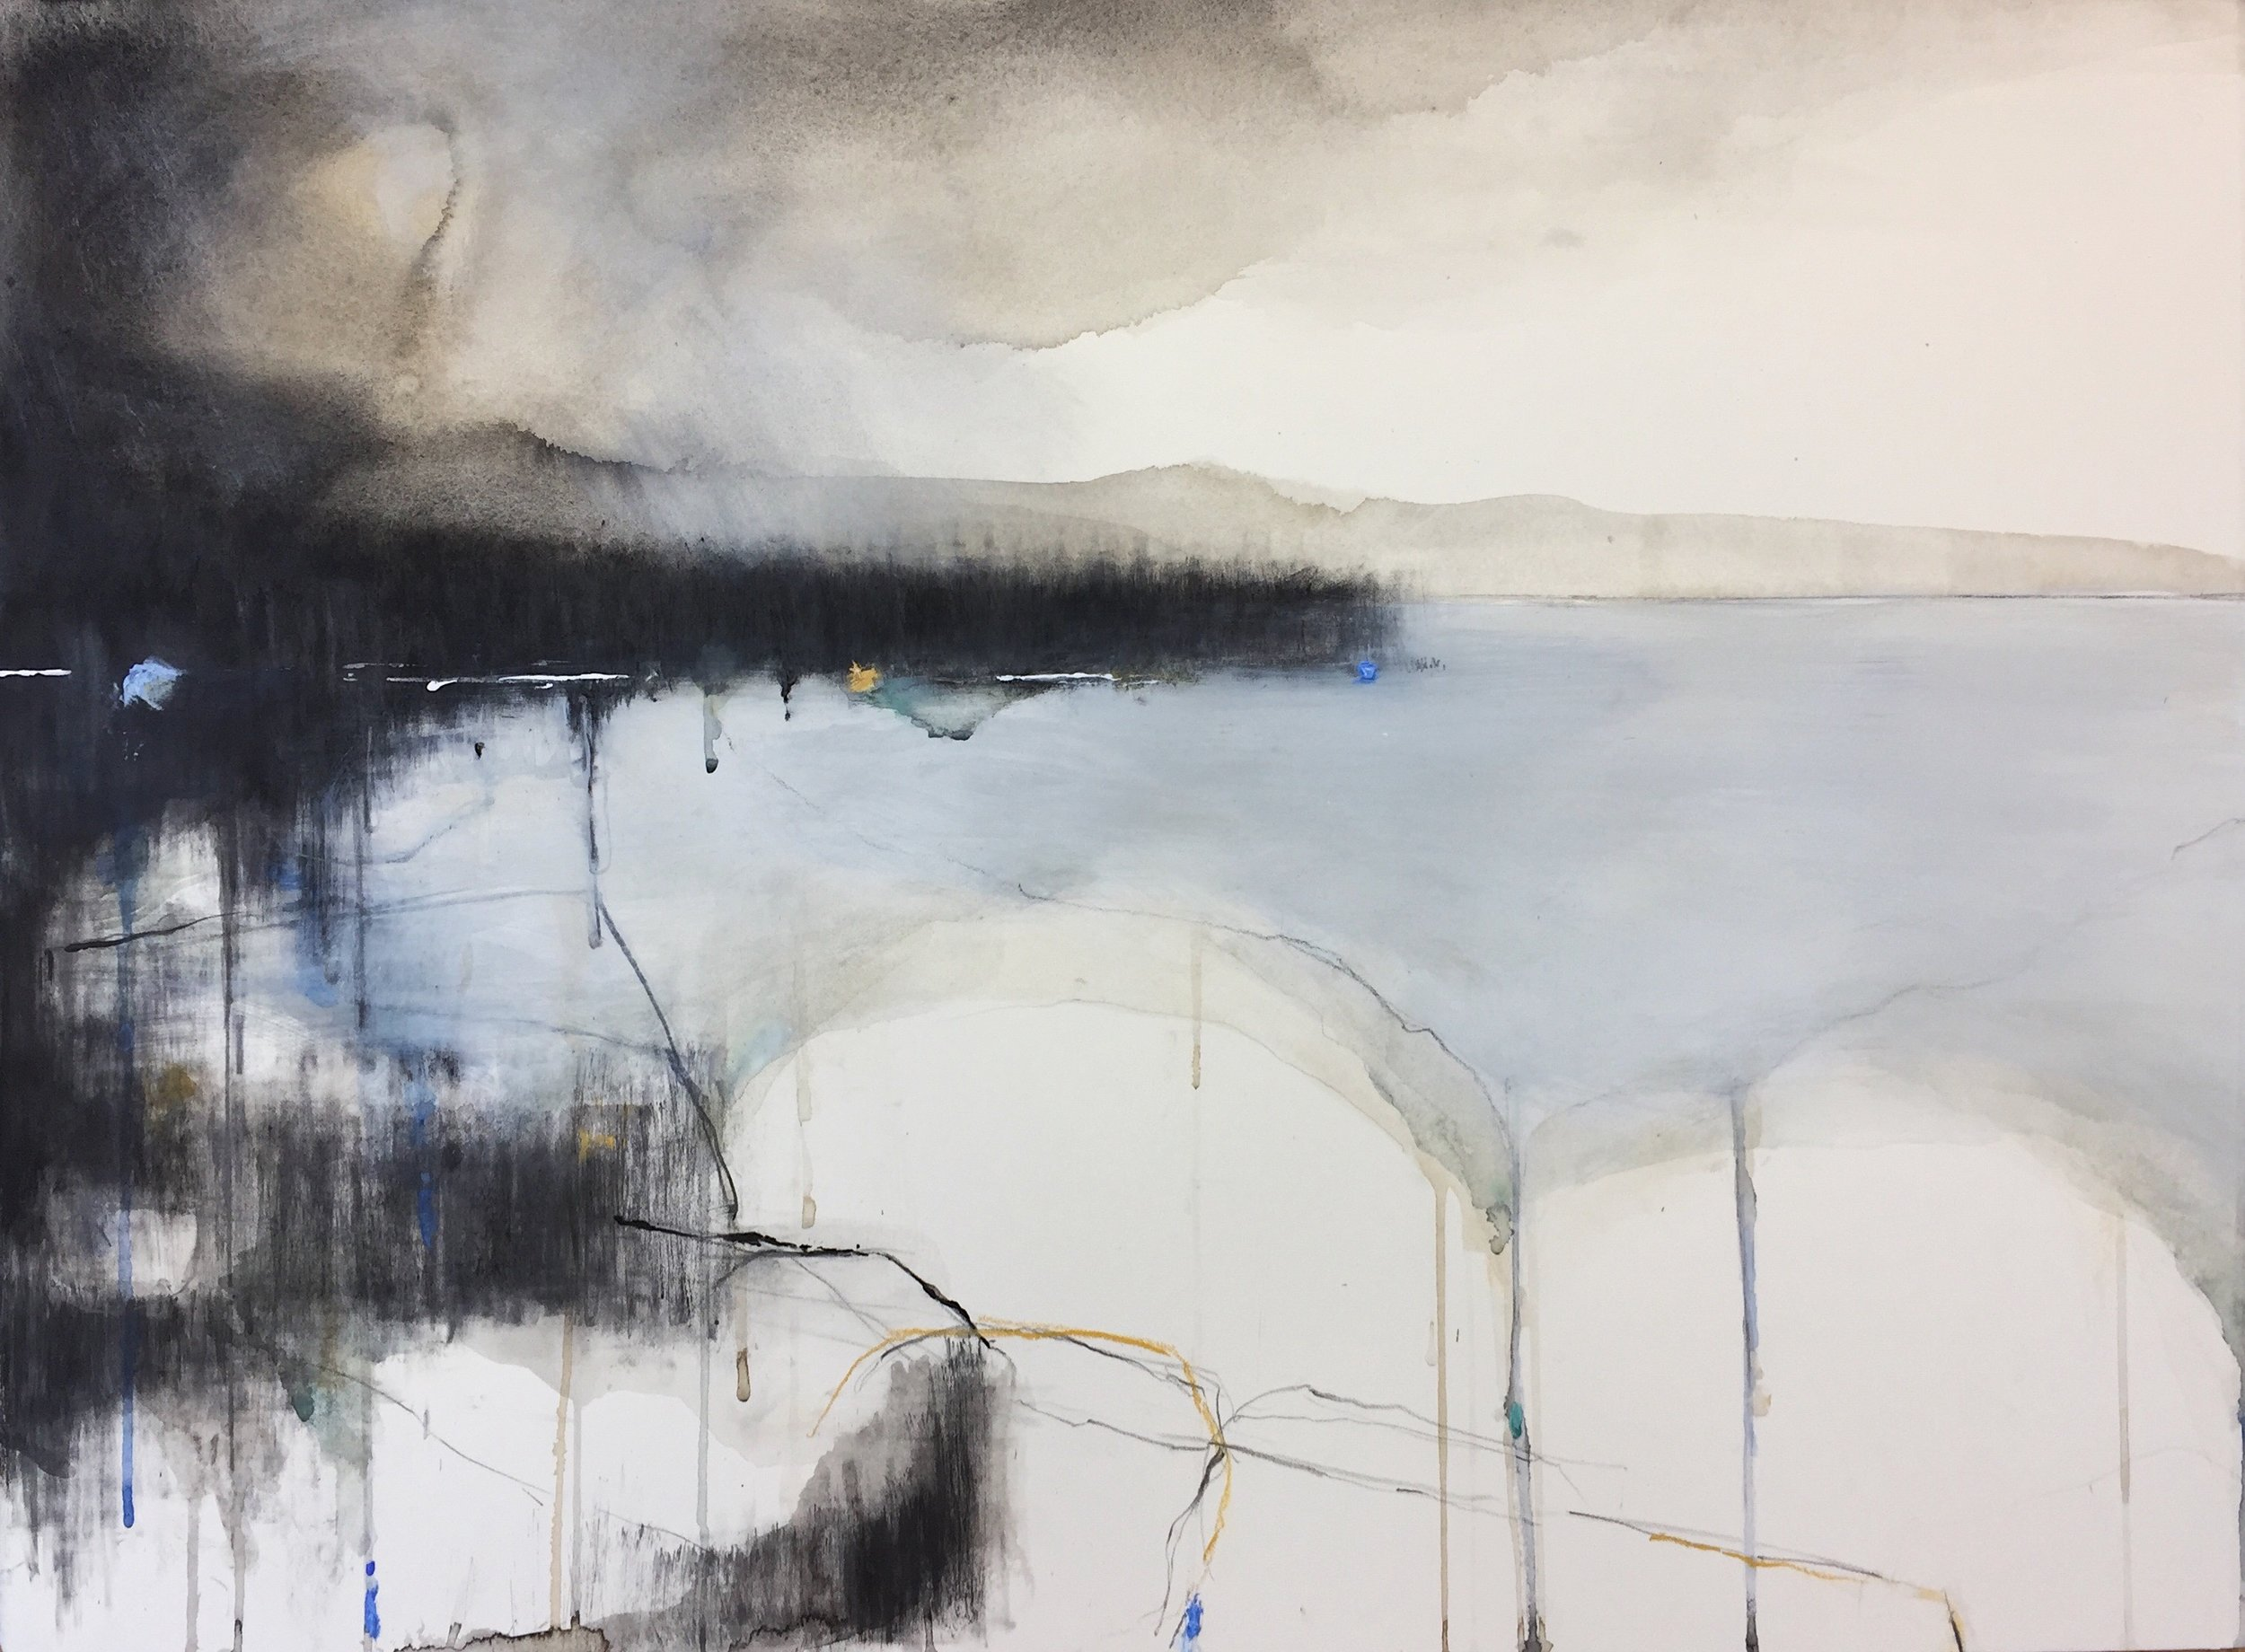 Winter Cove, Cornwall. 56 x 76cm. Graphite, oil, watercolour and gesso on paper.